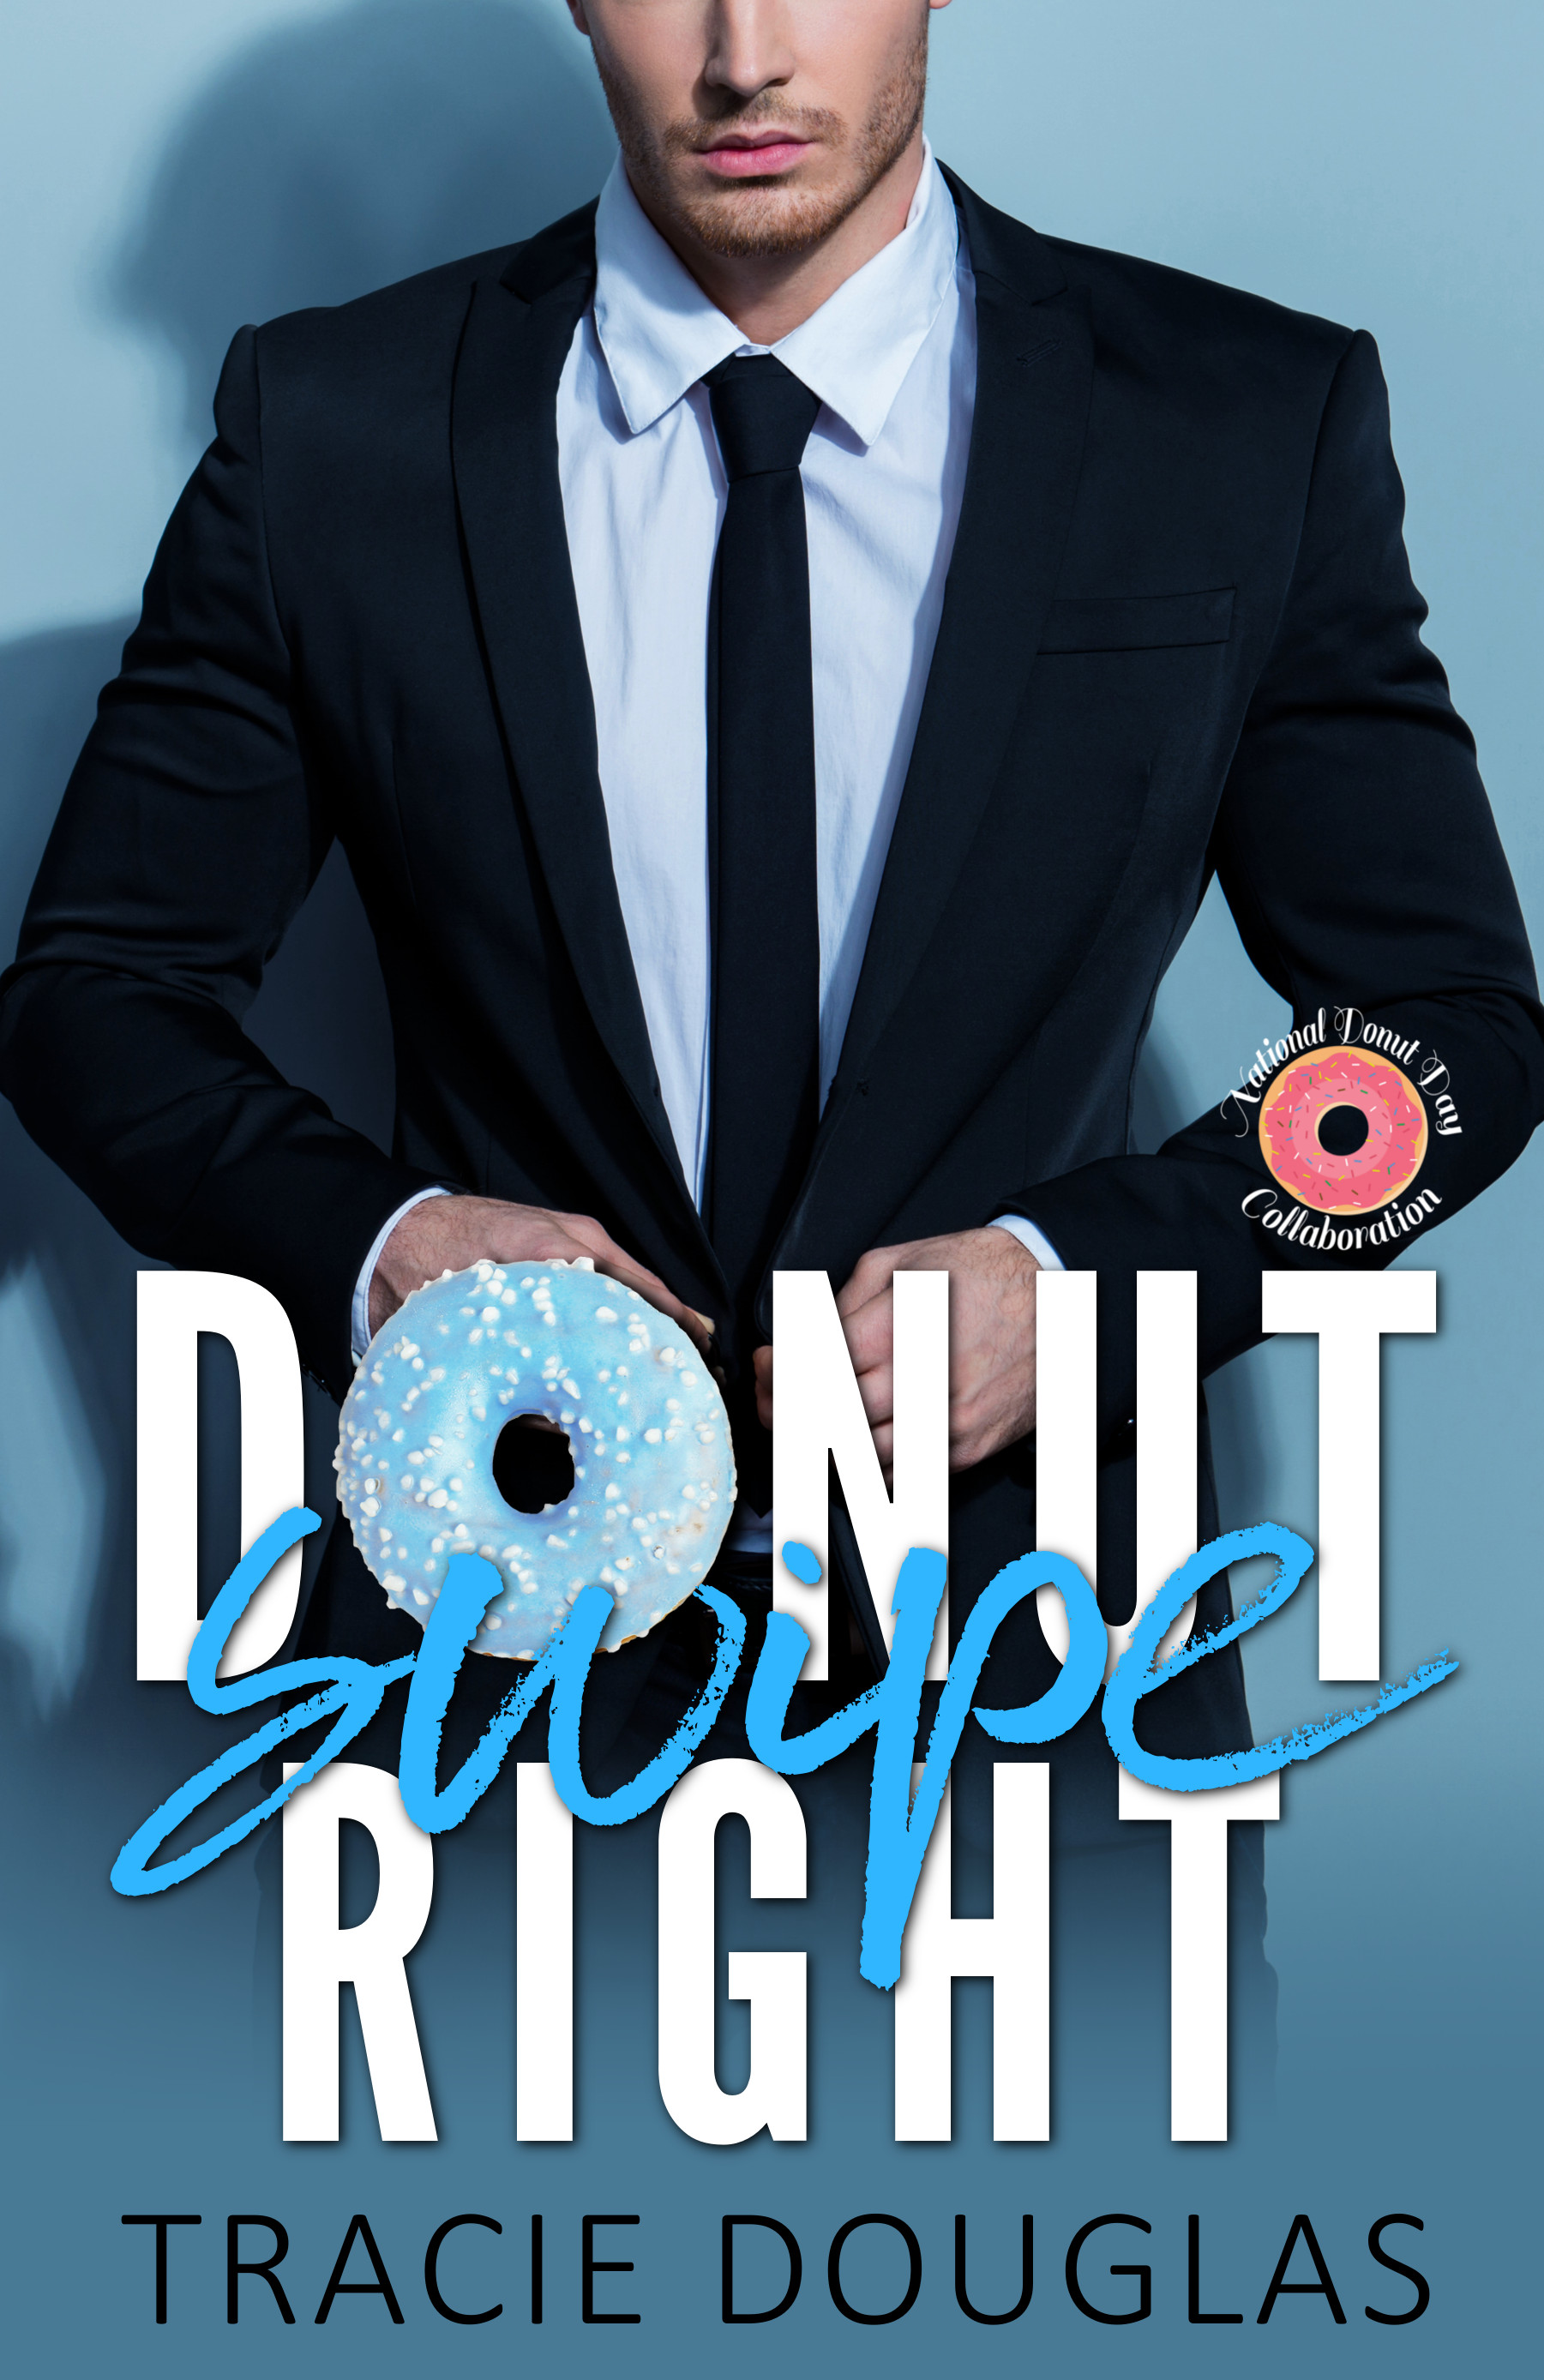 Douglas - Donut Swipe Right eCover